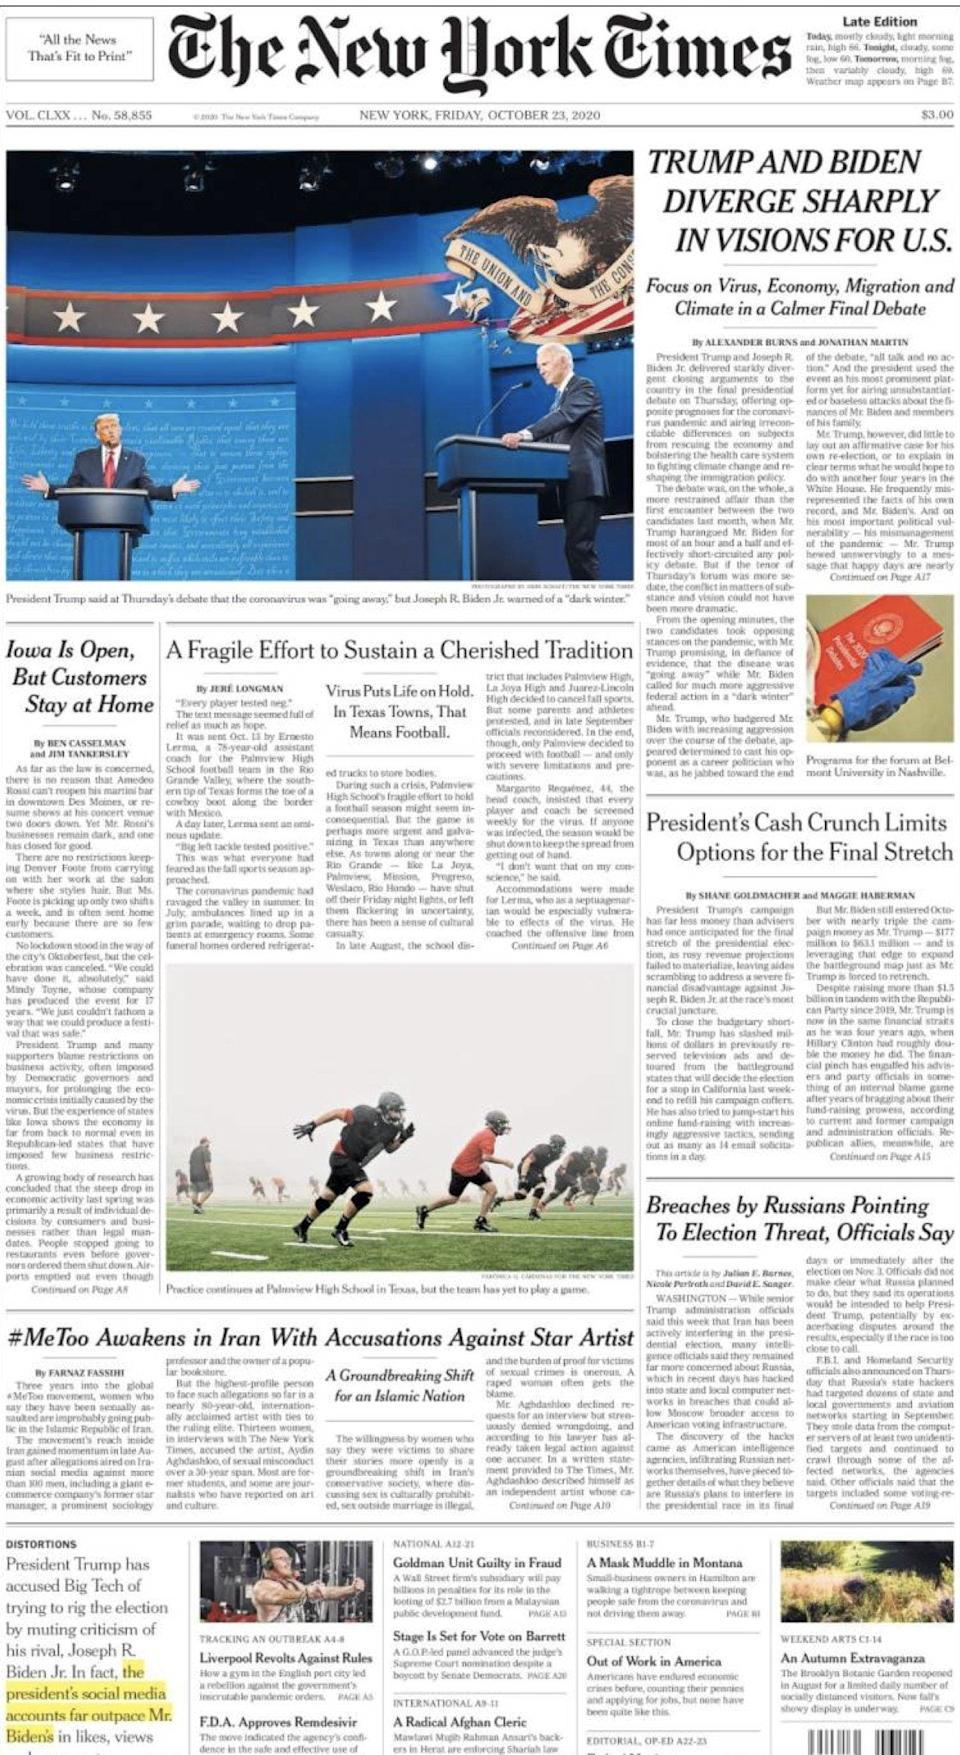 Friday's front page of the New York Times